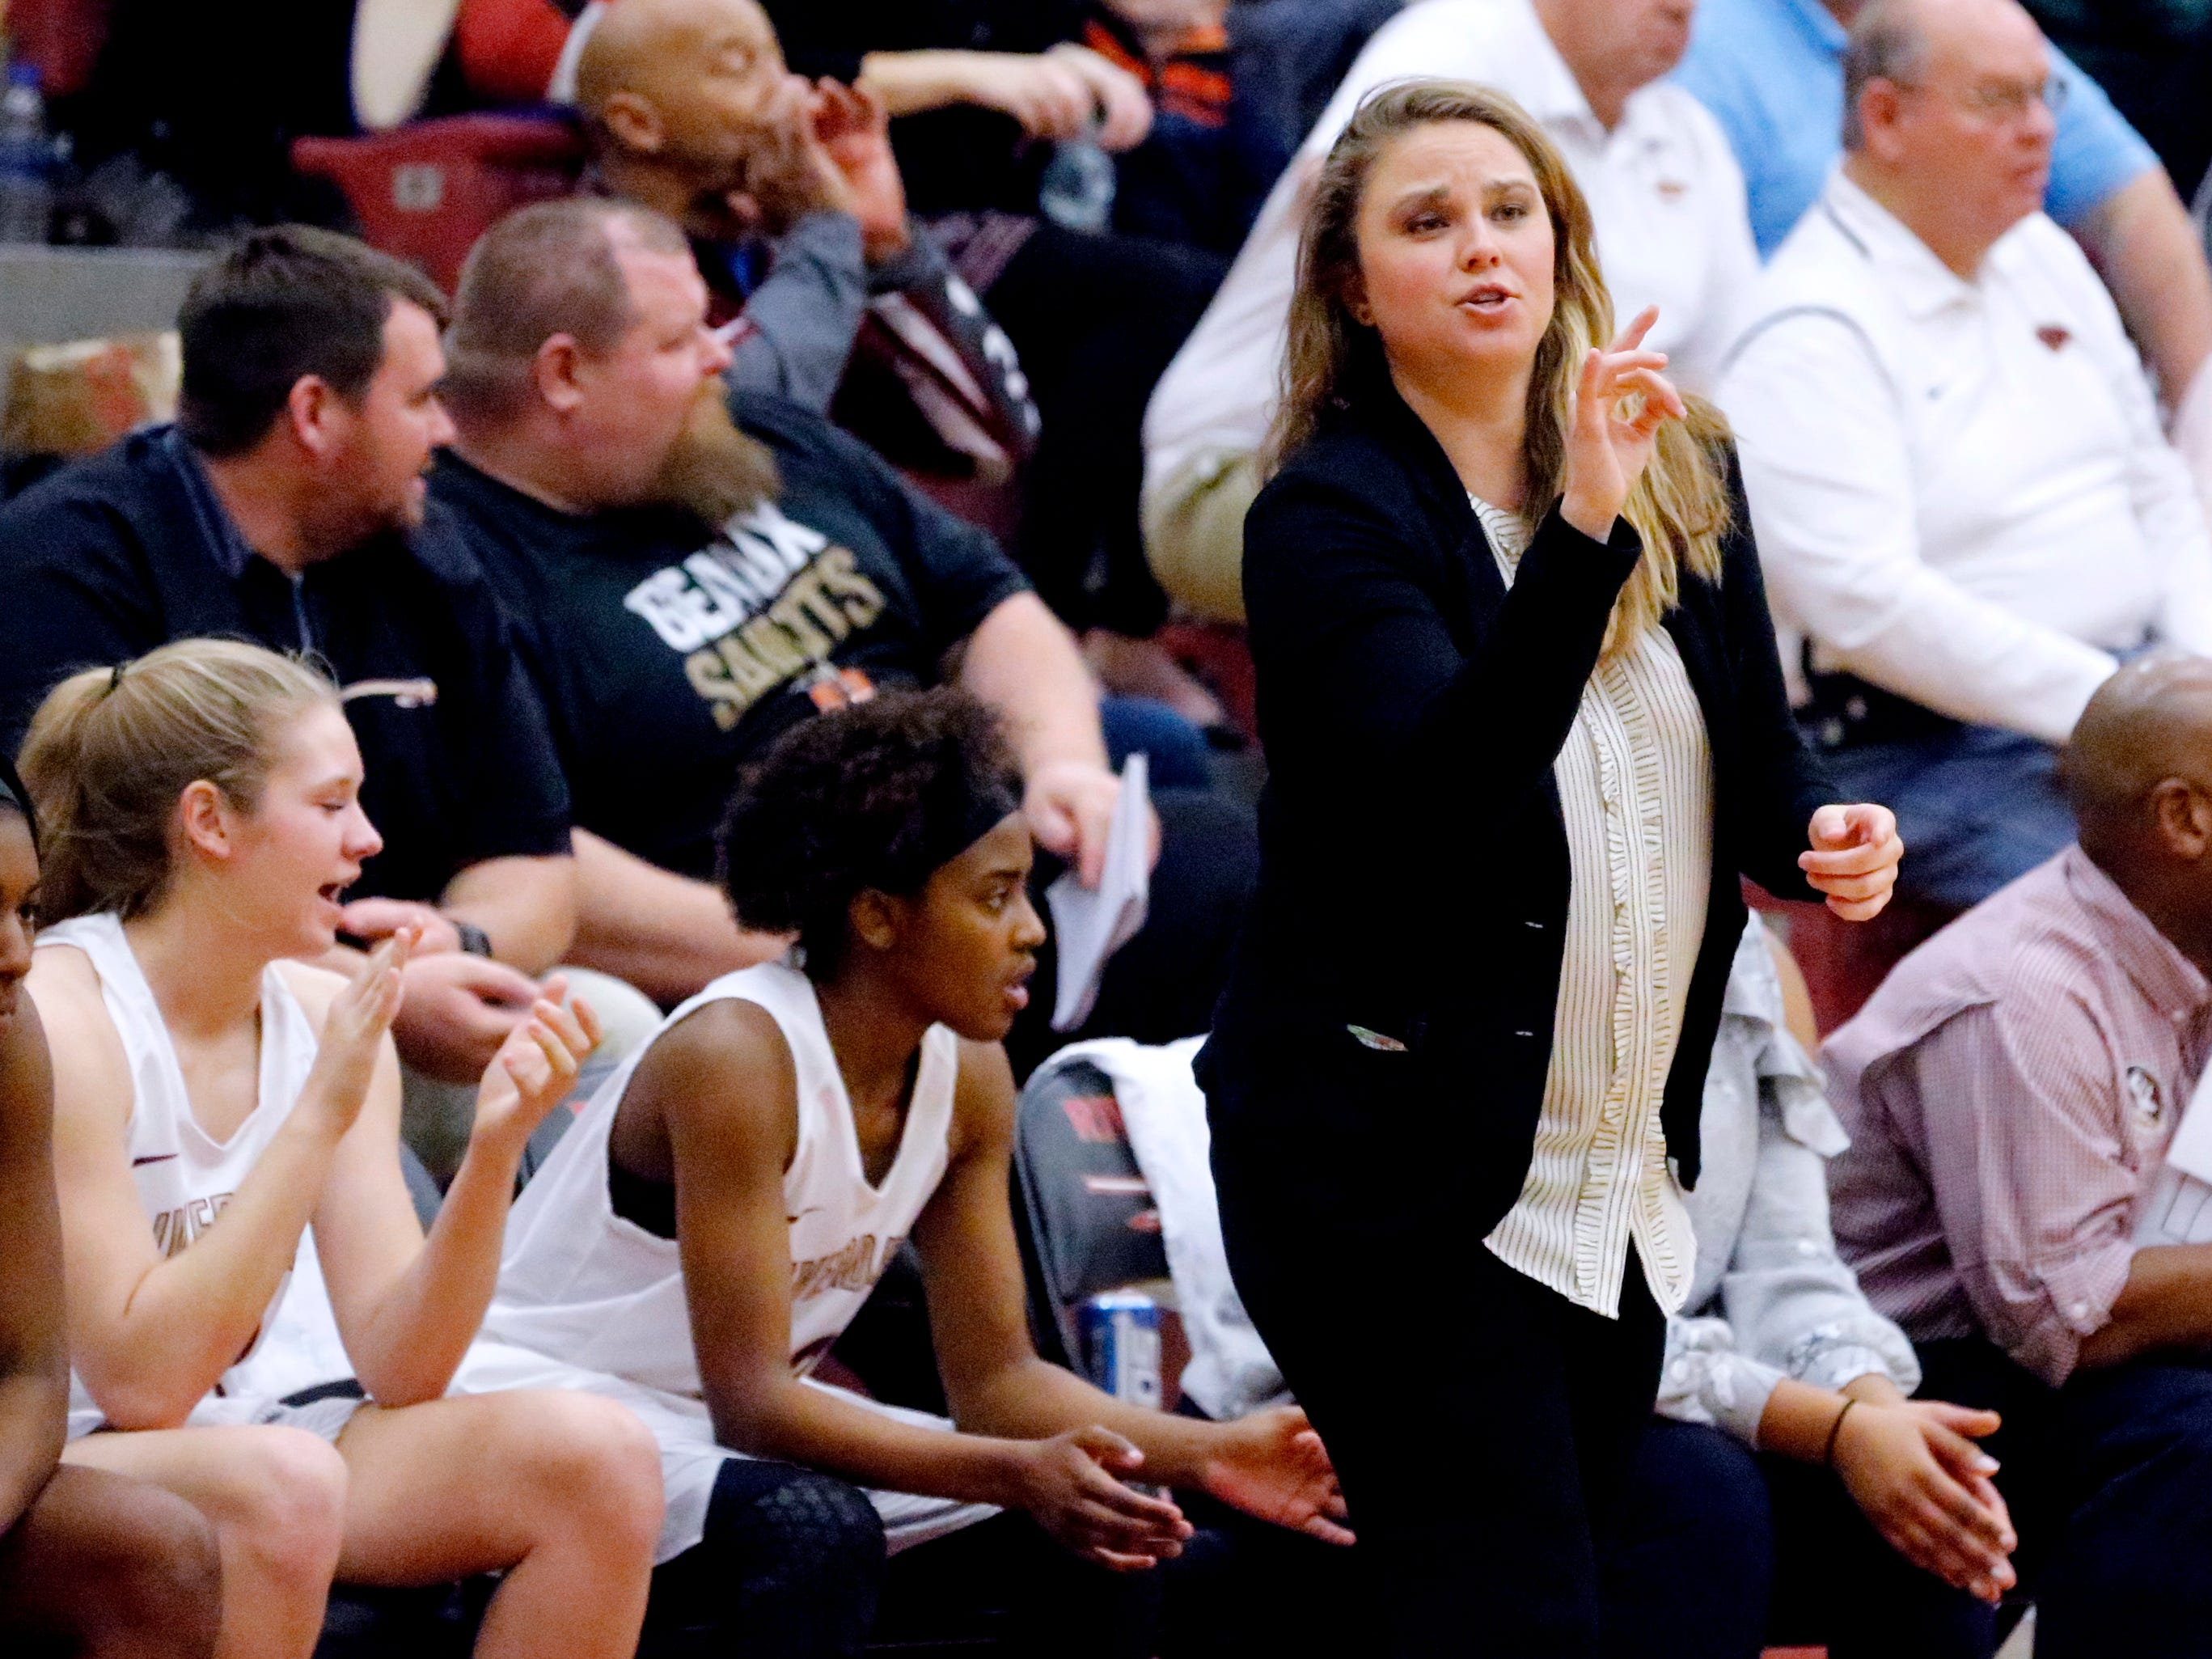 Riverdale's head coach Amy Josephson instructs her team from the sidelines during the game against Blackman on Tuesday Jan. 8, 2019.